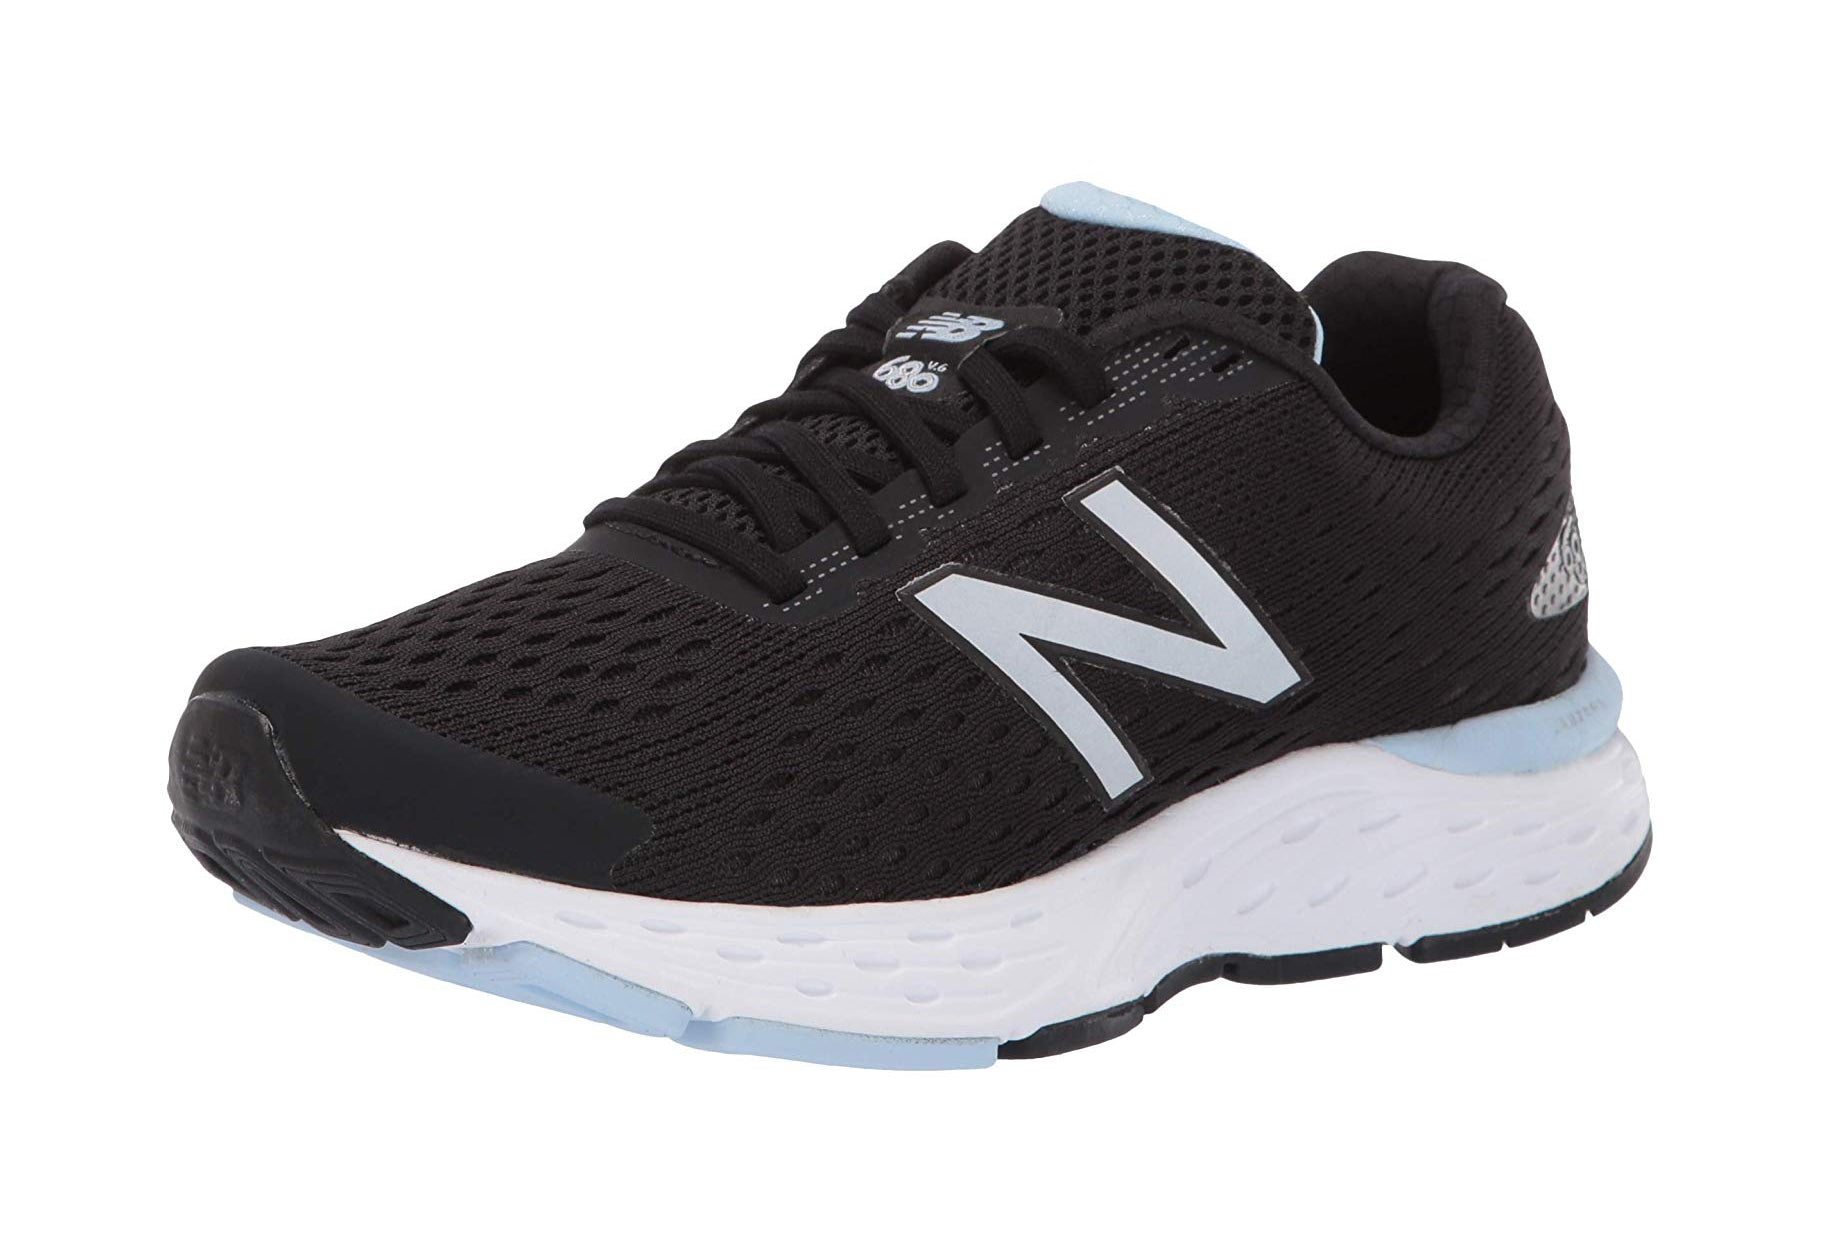 New Balance 680 Black/White Women's Shoes